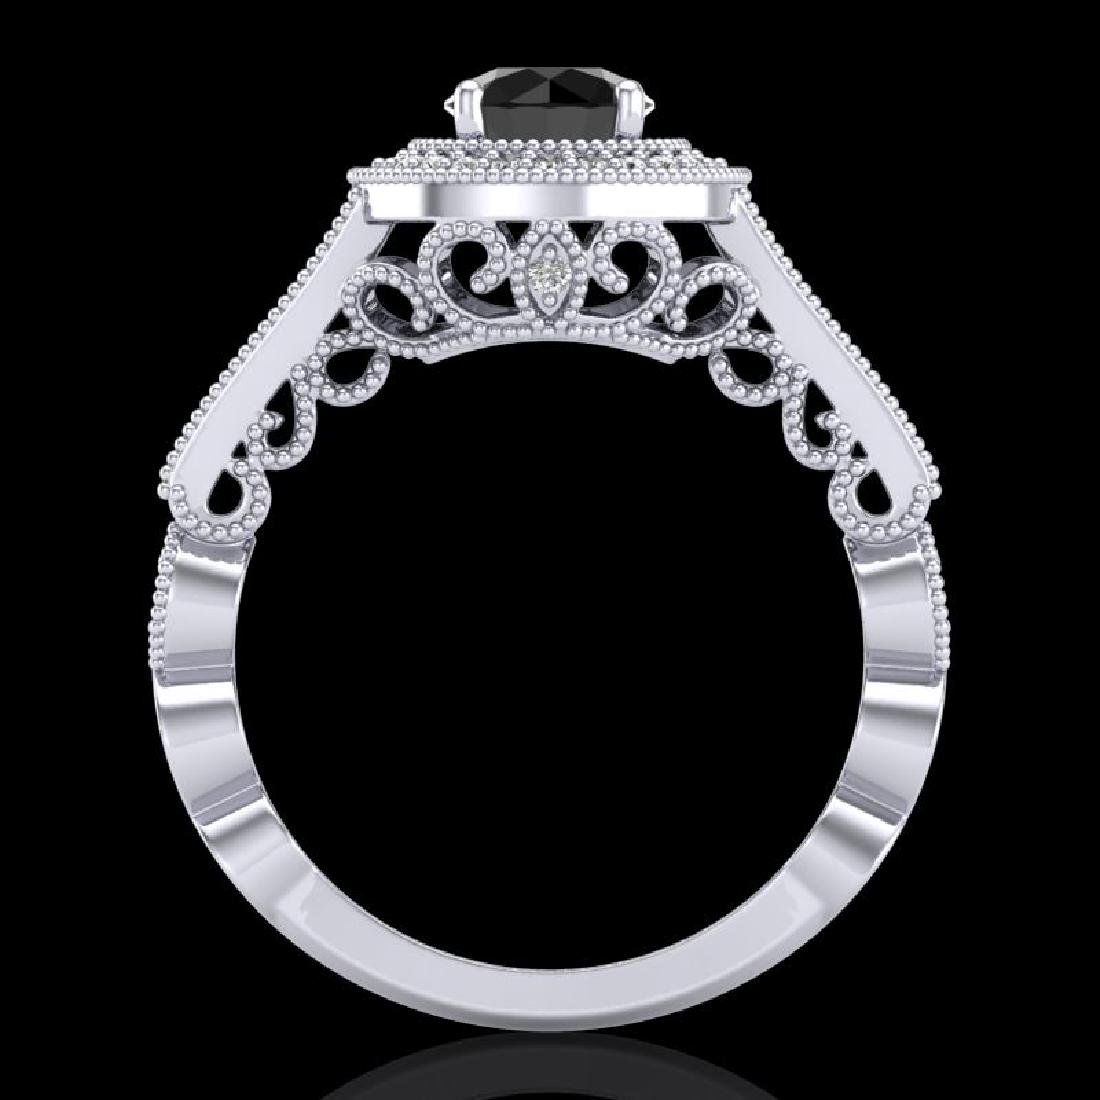 1.12 CTW Fancy Black Diamond Solitaire Engagement Art - 3